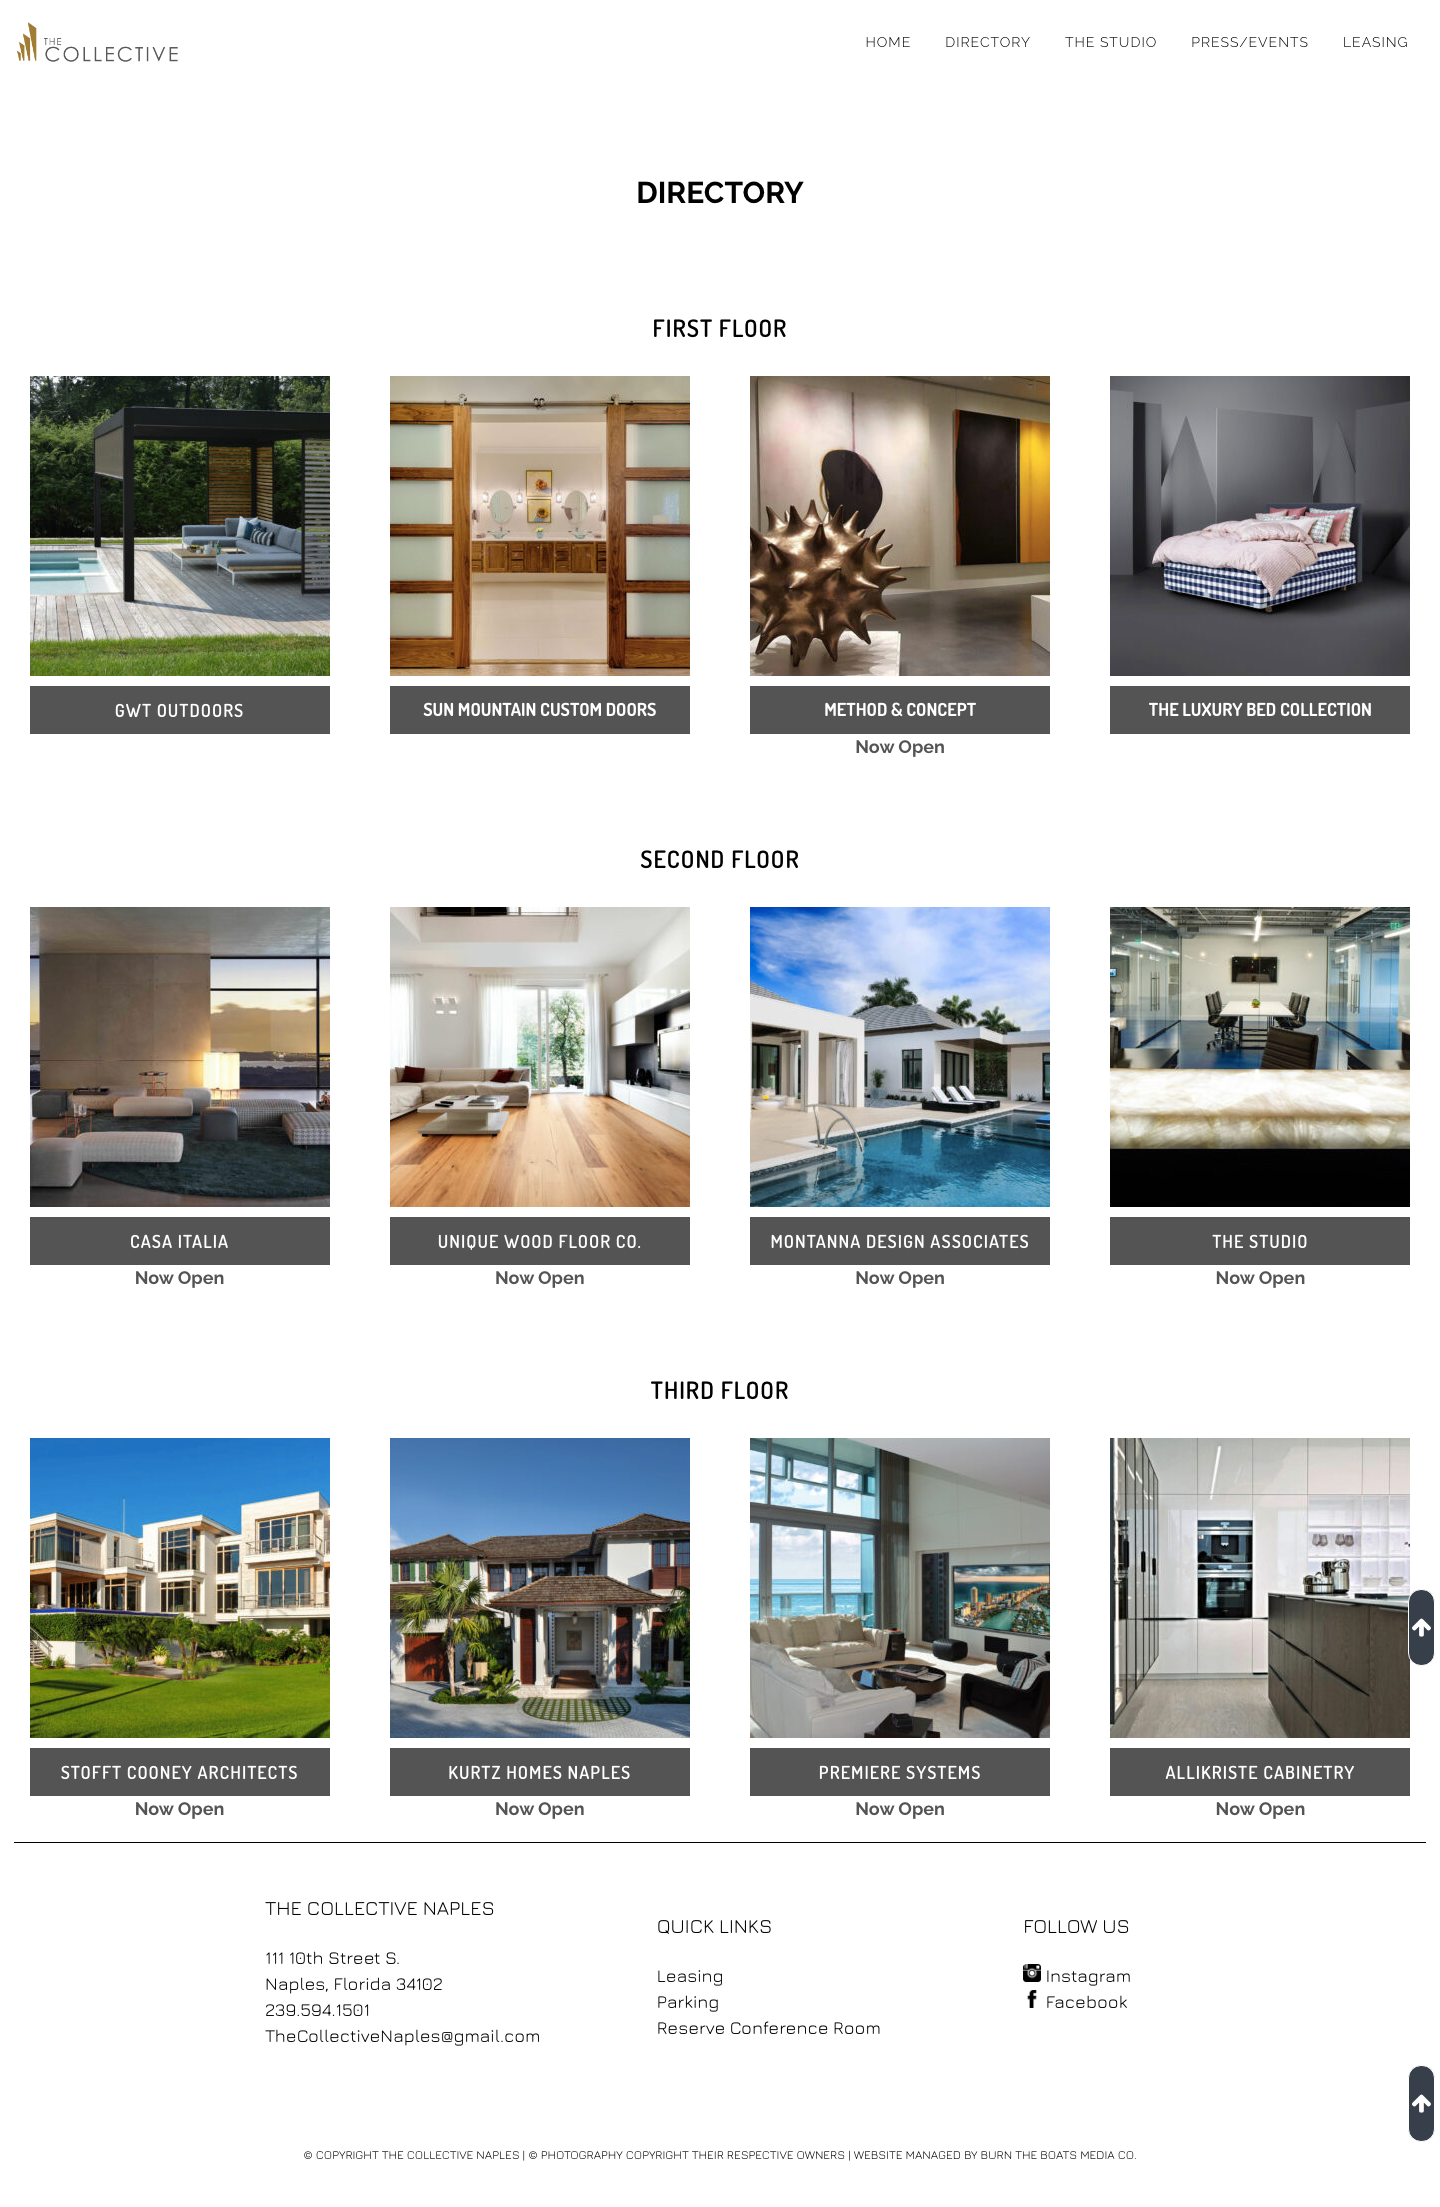 The Collective Directory website design